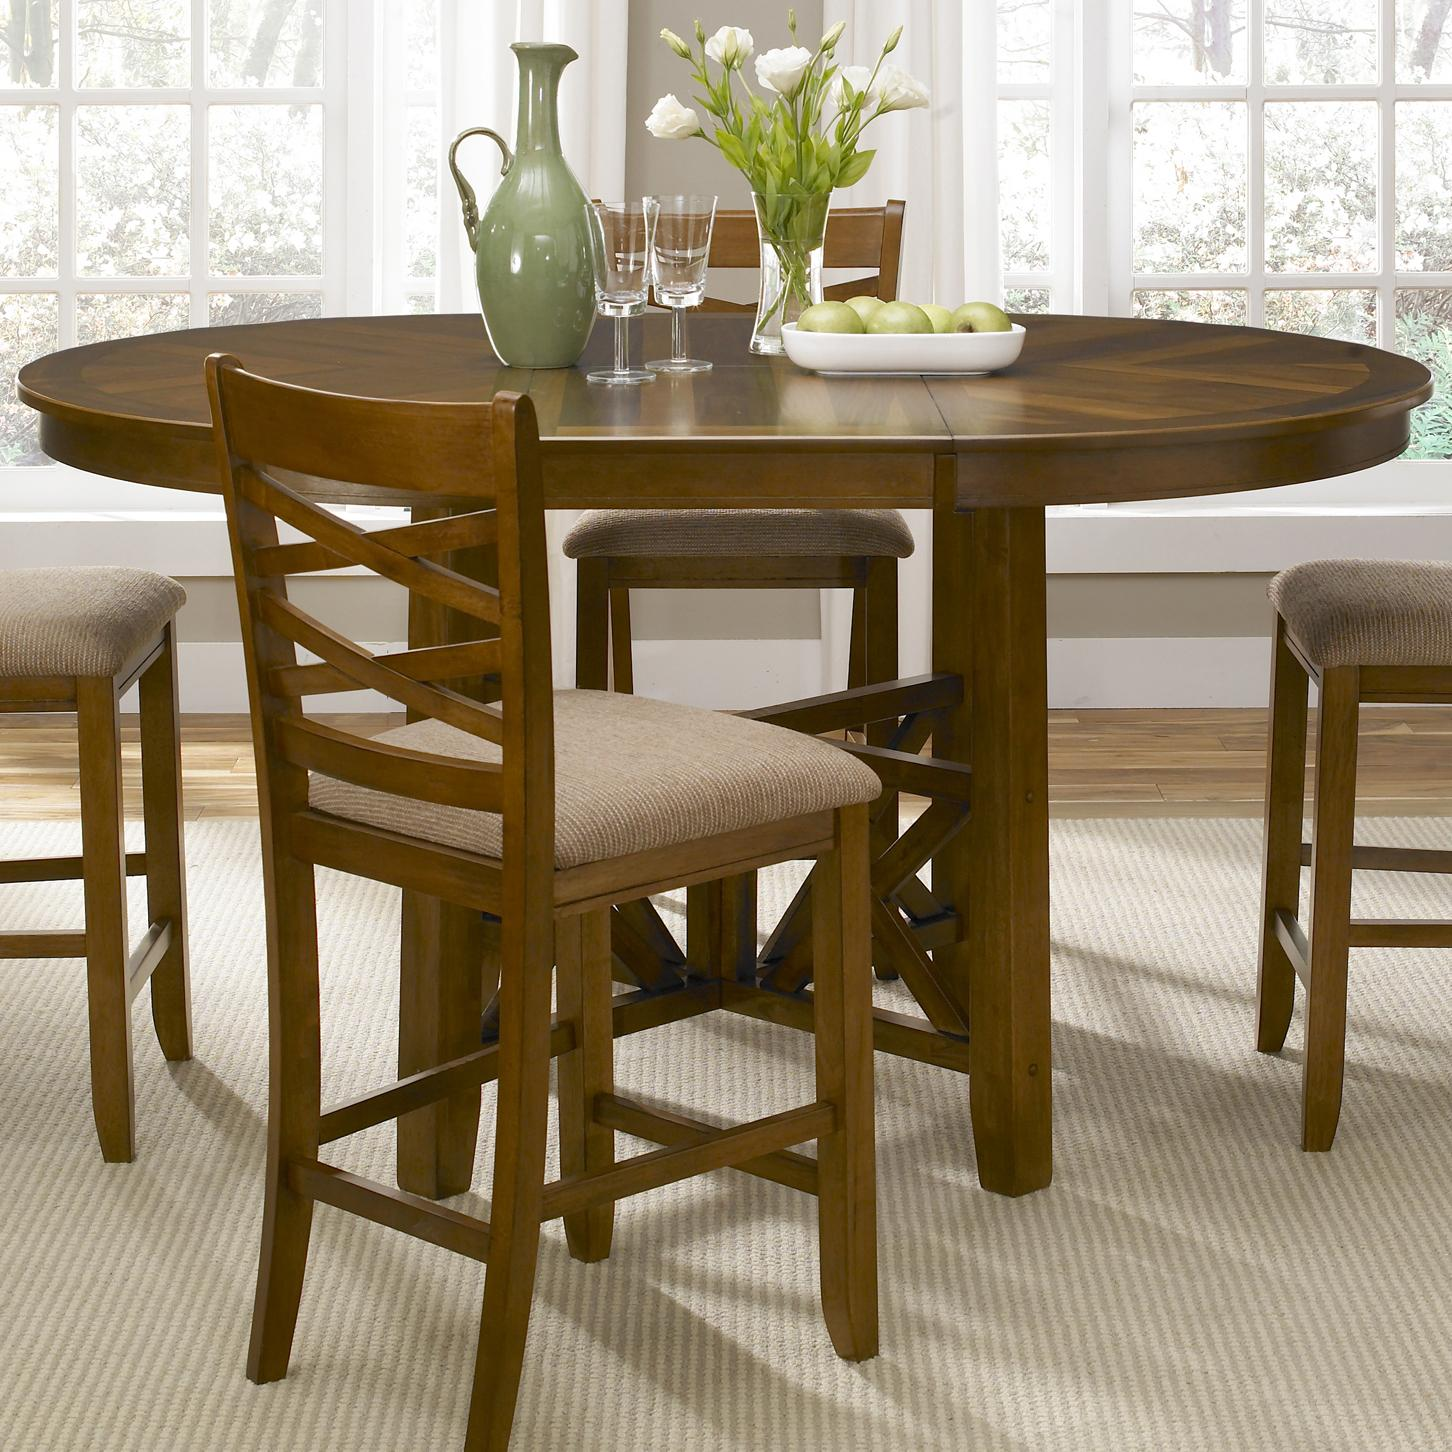 Liberty Furniture Applewood Gathering Height Table - Item Number: 64-GT-4866B+GT4866